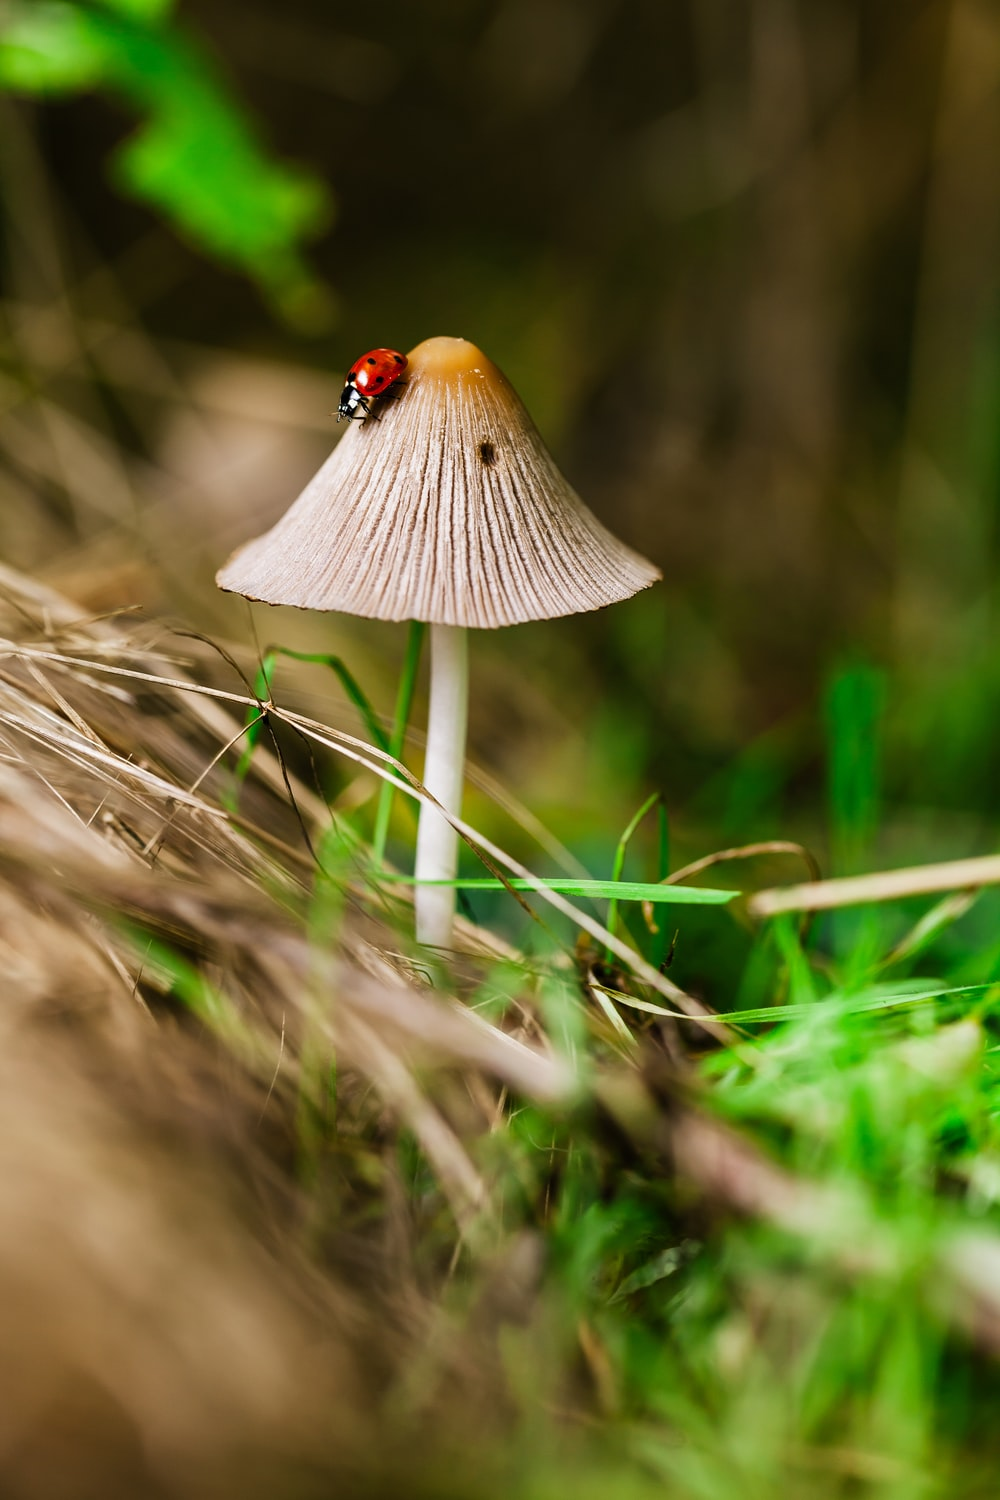 macro photography of bug on the mushroom